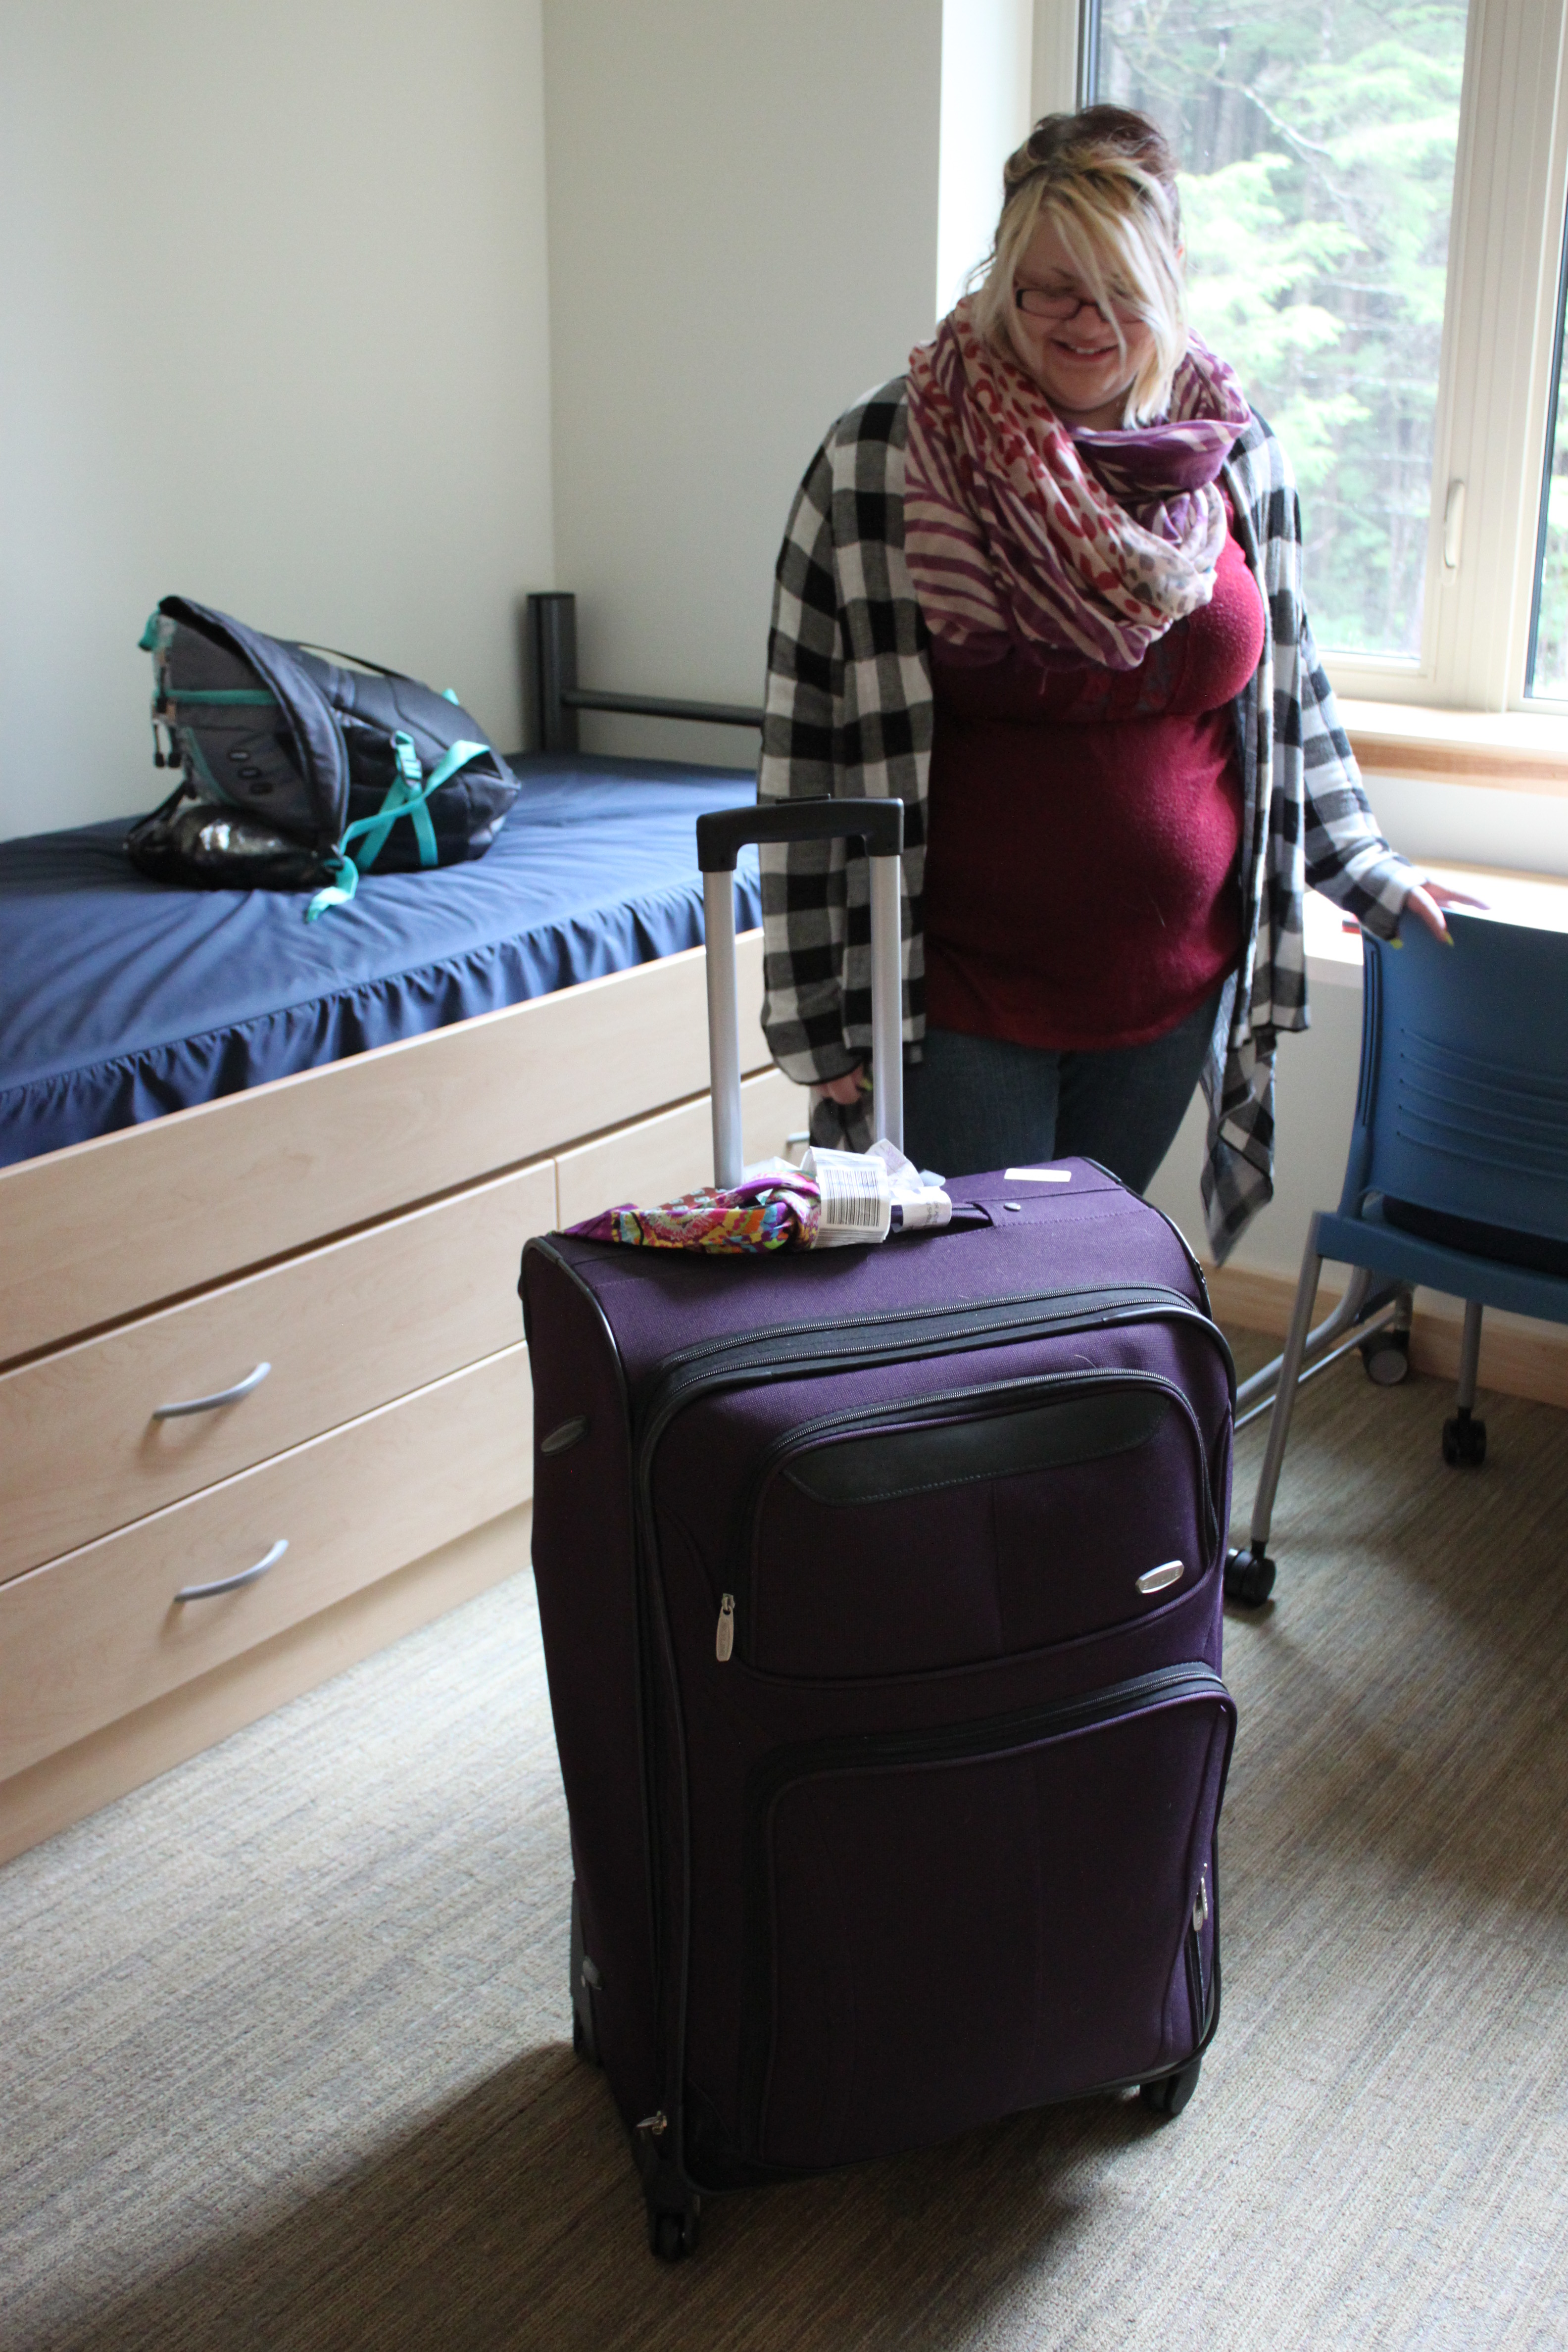 Samantha Ferguson from Indiana traveled light. While other students arrived at college with a carload of belongings, Ferguson moved to UAS with only one suitcase. (Photo by Lisa Phu/KTOO)